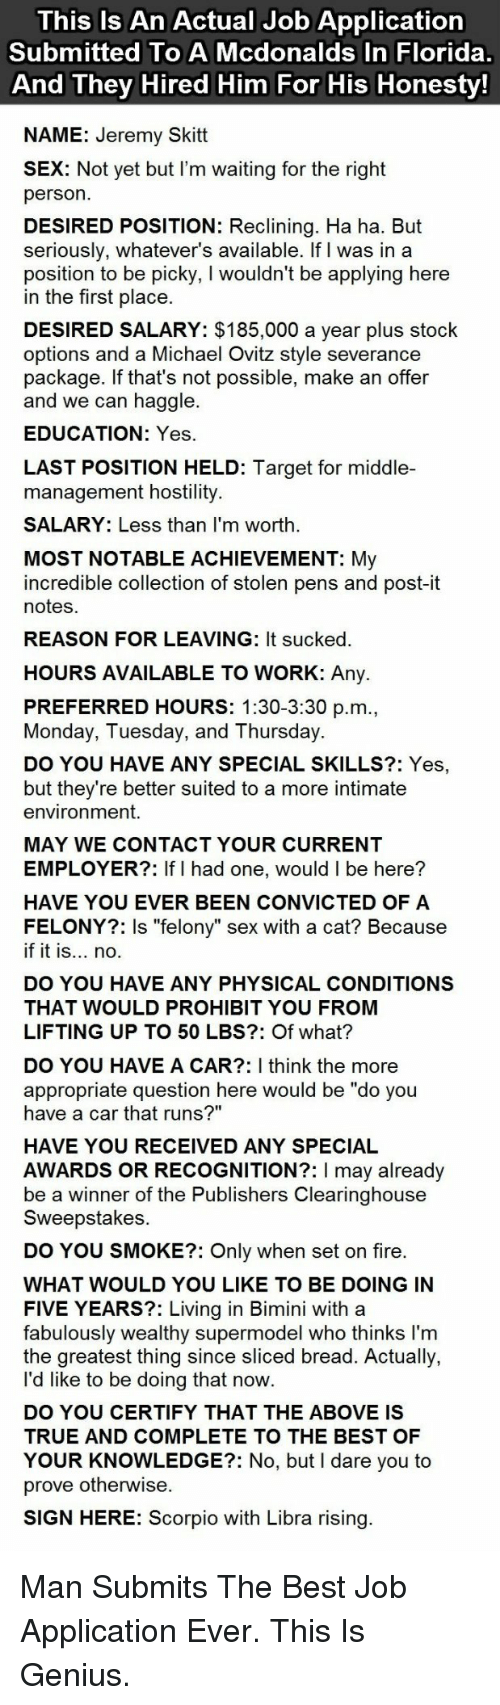 """stock options: This Is An Actual Job Application  Submitted To A Mcdonalds In Florida  And They Hired Him For His Honesty  NAME: Jeremy Skitt  X: Not yet but I'm waiting for the right  person  DESIRED POSITION: Reclining. Ha ha. But  seriously, whatever's available. If I was in a  position to be picky, I wouldn't be applying here  in the first place  DESIRED SALARY: $185,000 a year plus stock  options and a Michael Ovitz style severance  package. If that's not possible, make an offer  and we can haggle.  EDUCATION: Yes  LAST POSITION HELD: Target for middle-  management hostility  SALARY: Less than I'm worth  MOST NOTABLE ACHIEVEMENT: My  incredible collection of stolen pens and post-it  notes  REASON FOR LEAVING: It sucked  HOURS AVAILABLE TO WORK: Any.  PREFERRED HOURS: 1:30-3:30 p.m  Monday, Tuesday, and Thursday.  DO YOU HAVE ANY SPECIAL SKILLS?: Yes,  but they're better suited to a more intimate  environment.  MAY WE CONTACT YOUR CURRENT  EMPLOYER?: If I had one, would I be here?  HAVE YOU EVER BEEN CONVICTED OF A  FELONY?: Is """"felony"""" sex with a cat? Because  if it is... no.  DO YOU HAVE ANY PHYSICAL CONDITIONS  THAT WOULD PROHIBIT YOU FROM  LIFTING UP TO 50 LBS?: Of what?  DO YOU HAVE A CAR?: I think the more  appropriate question here would be """"do you  have a car that runs?""""  HAVE YOU RECEIVED ANY SPECIAL  AWARDS OR RECOGNITION?: I may already  be a winner of the Publishers Clearinghouse  Sweepstakes  DO YOU SMOKE?: Only when set on fire  WHAT WOULD YOU LIKE TO BE DOING IN  FIVE YEARS?: Living in Bimini with a  fabulously wealthy supermodel who thinks I'm  the greatest thing since sliced bread. Actually,  l'd like to be doing that now  DO YOU CERTIFY THAT THE ABOVE IS  TRUE AND COMPLETE TO THE BEST OF  YOUR KNOWLEDGE?: No, but I dare you to  prove otherwise  SIGN HERE: Scorpio with Libra rising <p>Man Submits The Best Job Application Ever. This Is Genius.</p>"""